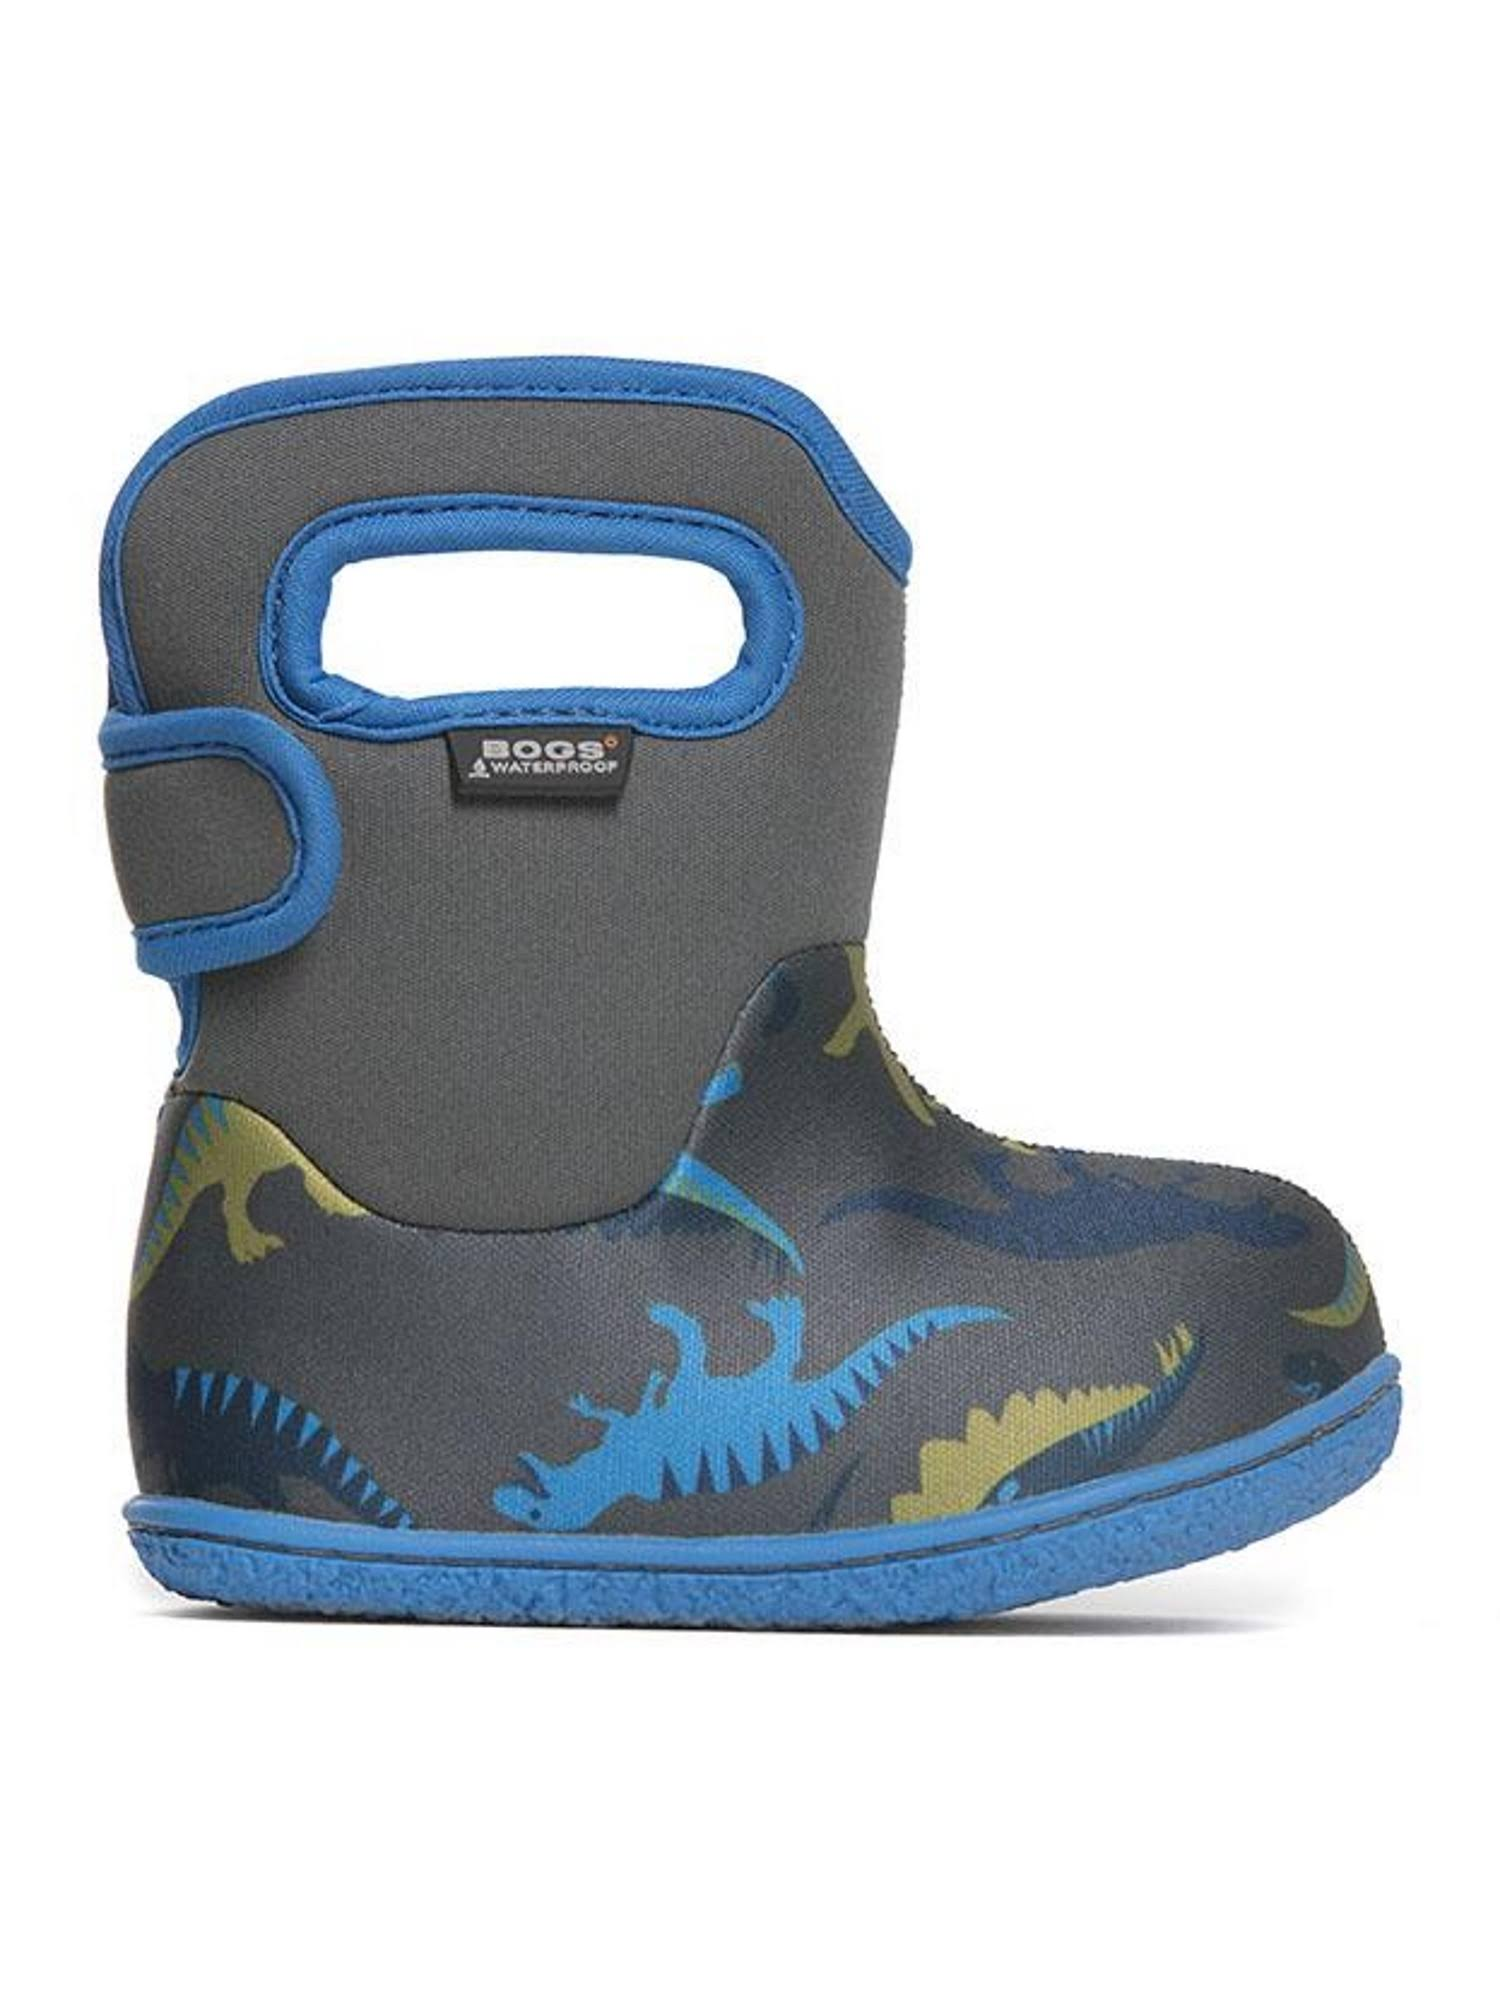 Bogs Baby Bogs Dino Waterproof Boots - Dino Dark Grey, 3 UK Infant